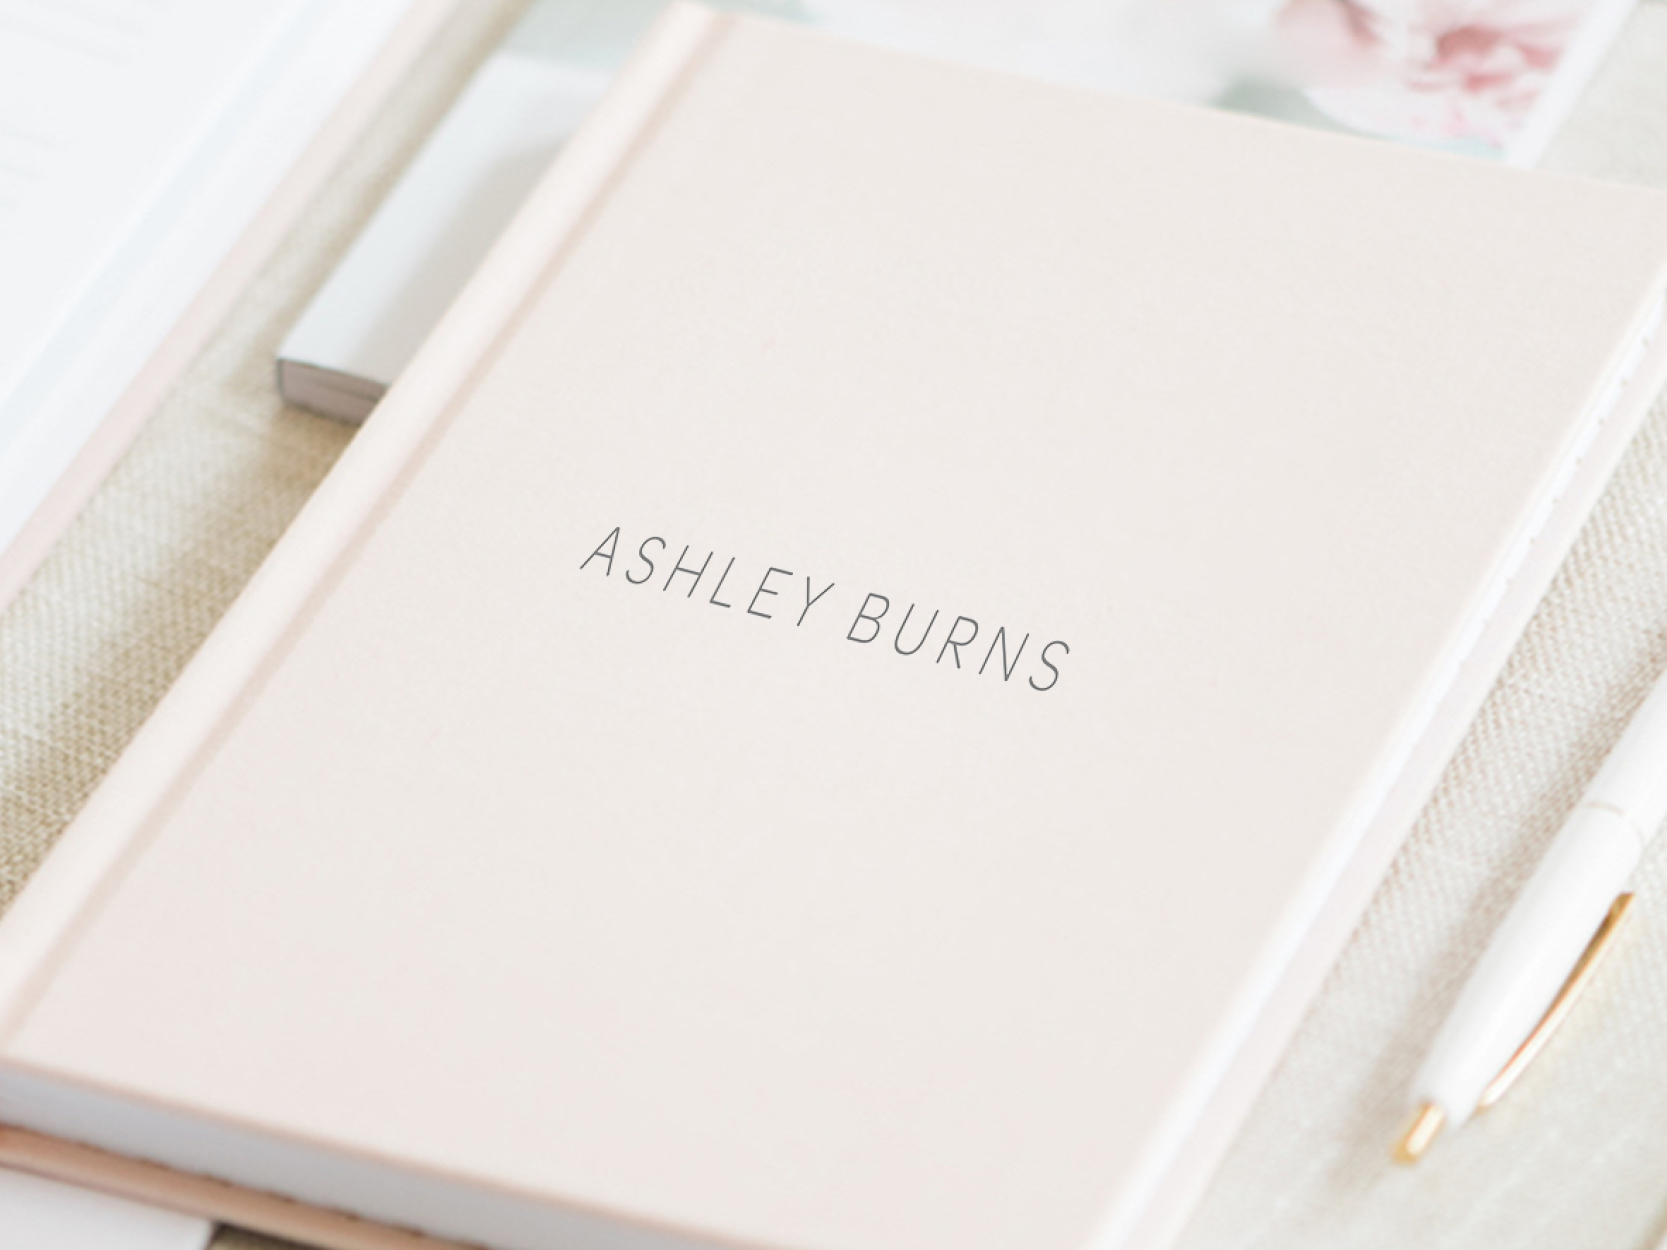 Ashley Burns is a wedding photographer in the LA area with modern and simple branding by Emma Rose Company.  Get inspired with her custom Squarespace website design by Emma Rose.  Custom web design for photographers.6.jpg